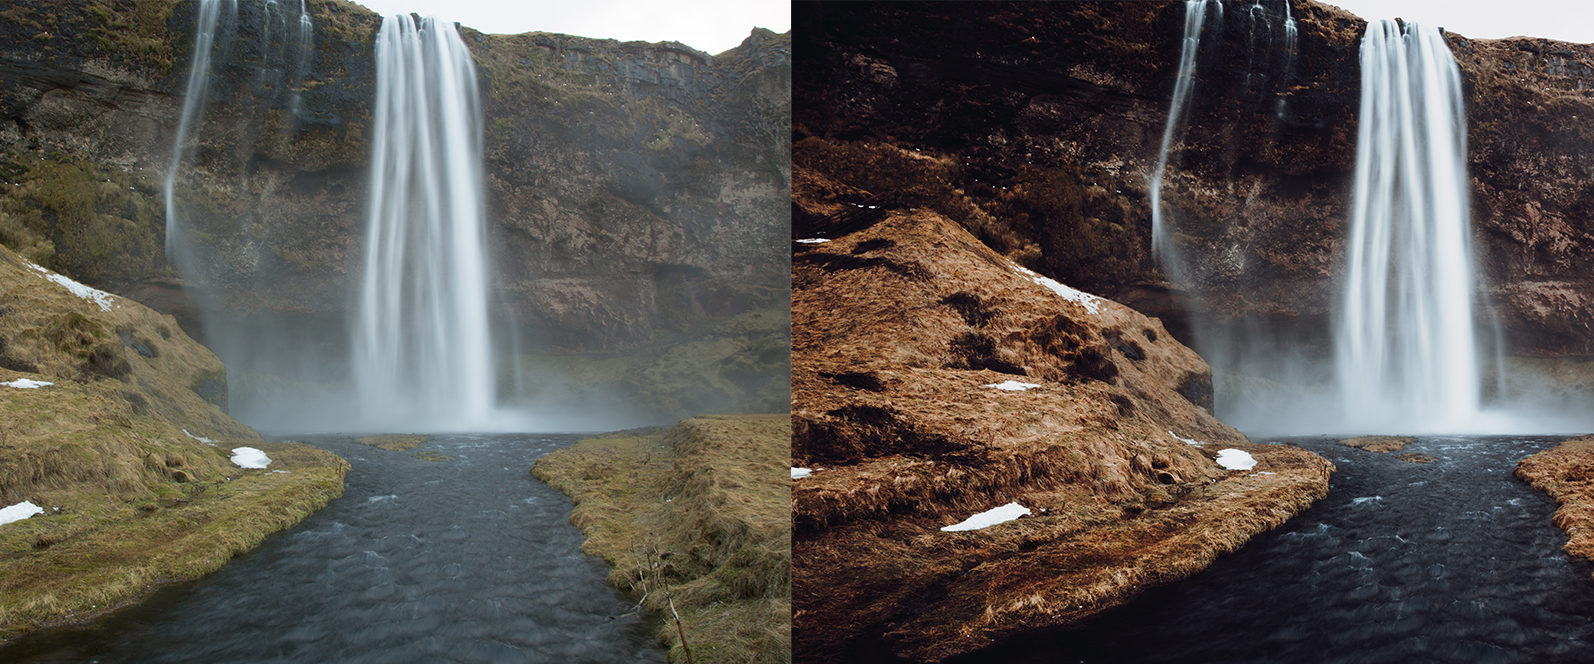 BUNDLE /// 03_Travel Collection // 97 x Desktop and Mobile Presets - Iceland Preview 1 1 -